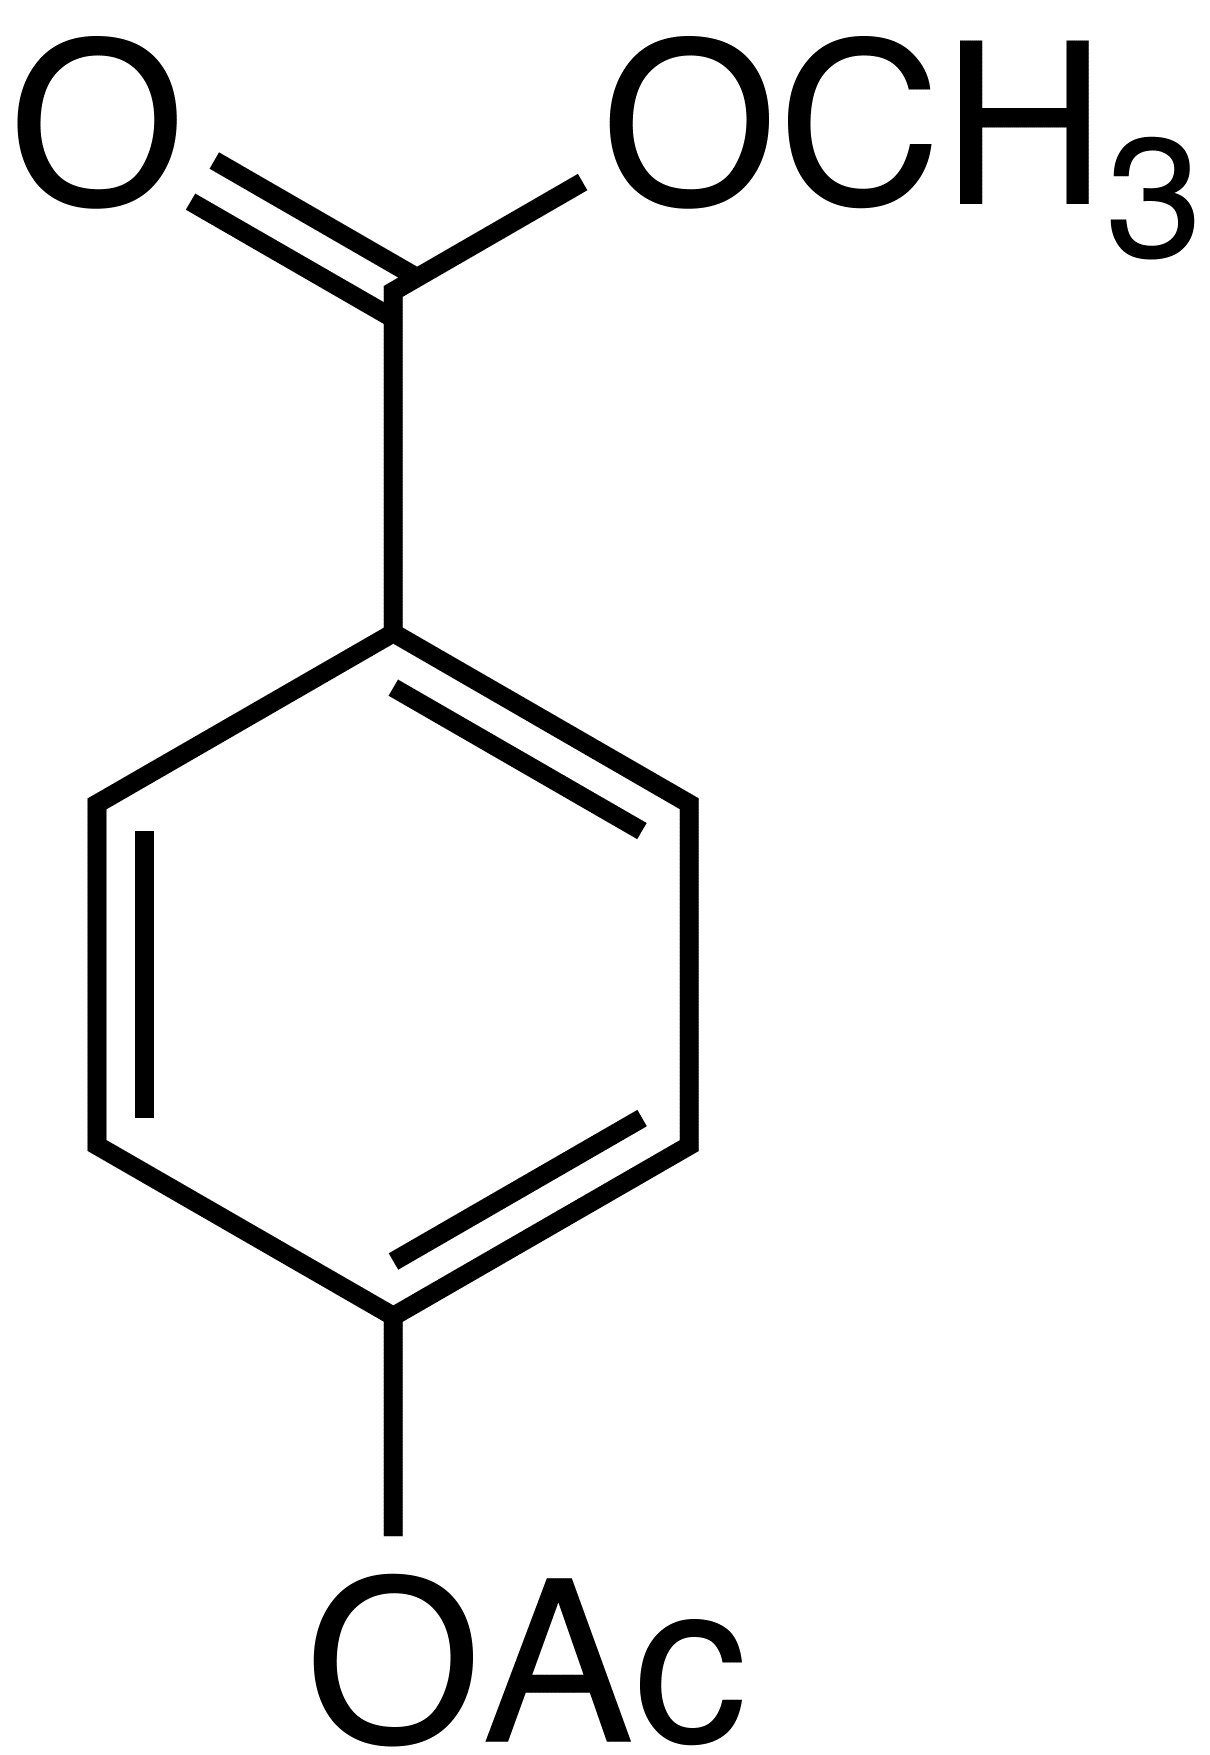 Methyl 4-acetoxybenzoate image